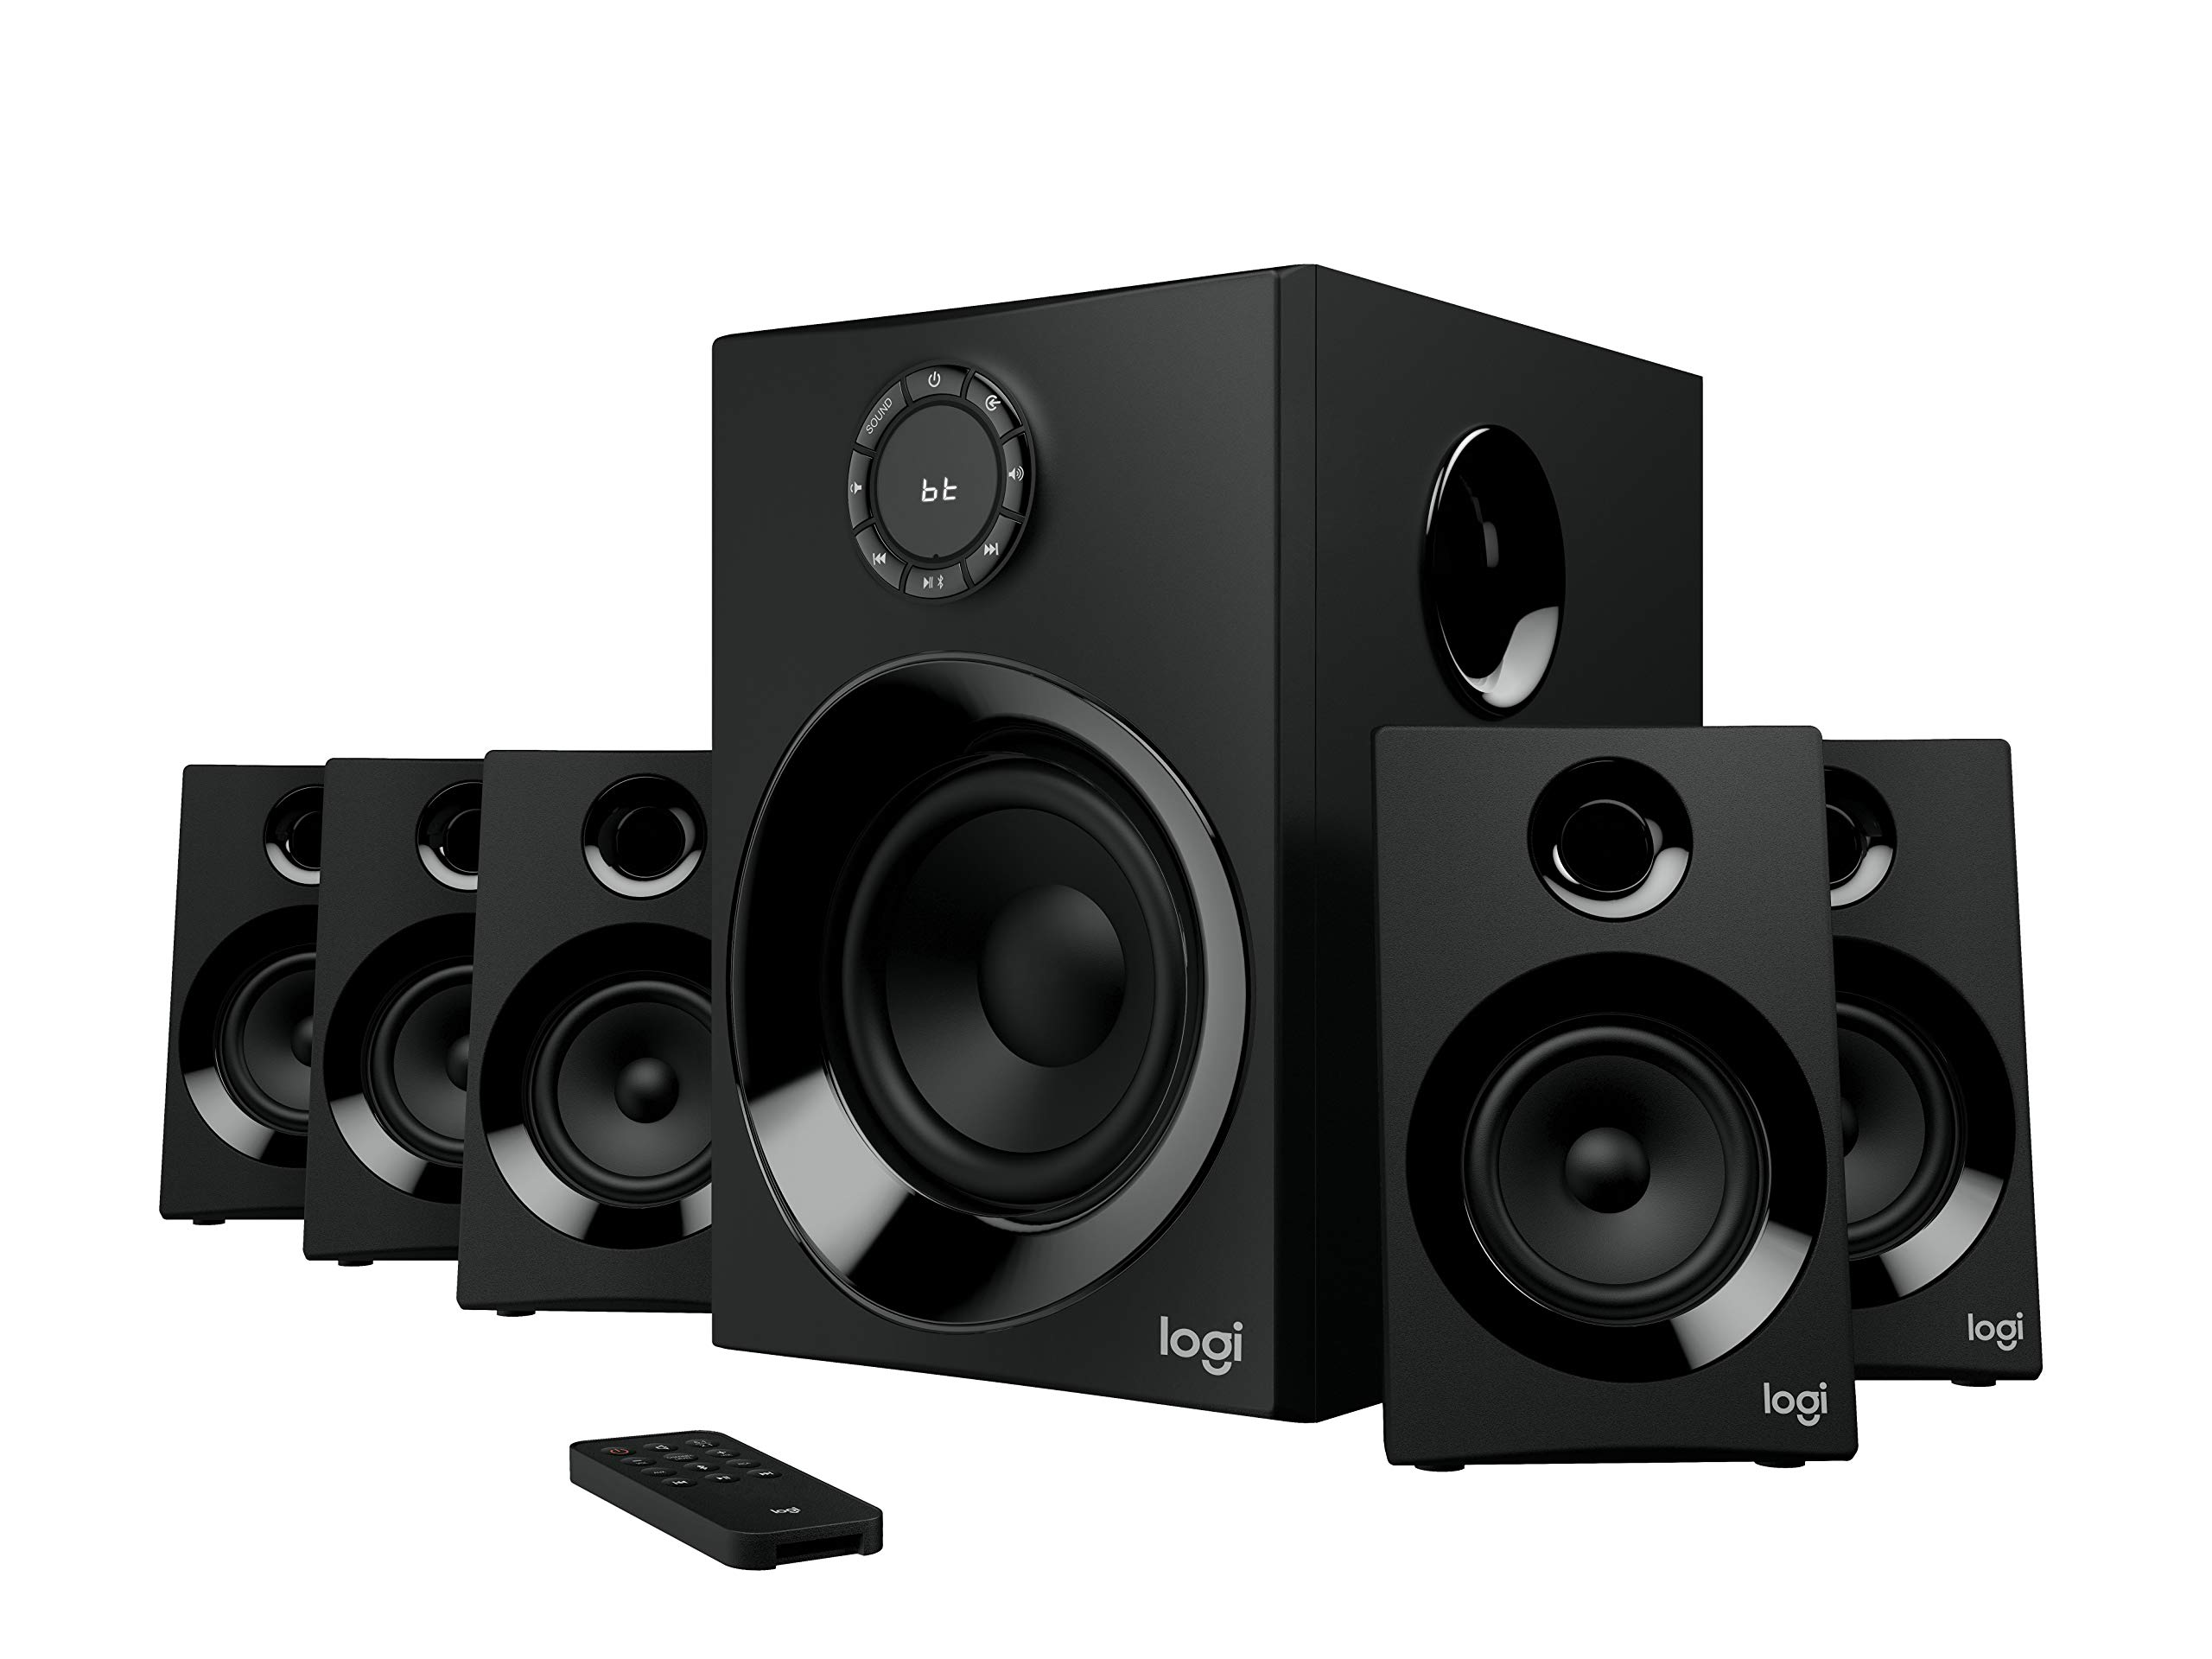 로지텍 Z606 51채널 서라운드 블루투스 스피커 Logitech Z606 51 Surround Sound Speaker System with Bluetooth